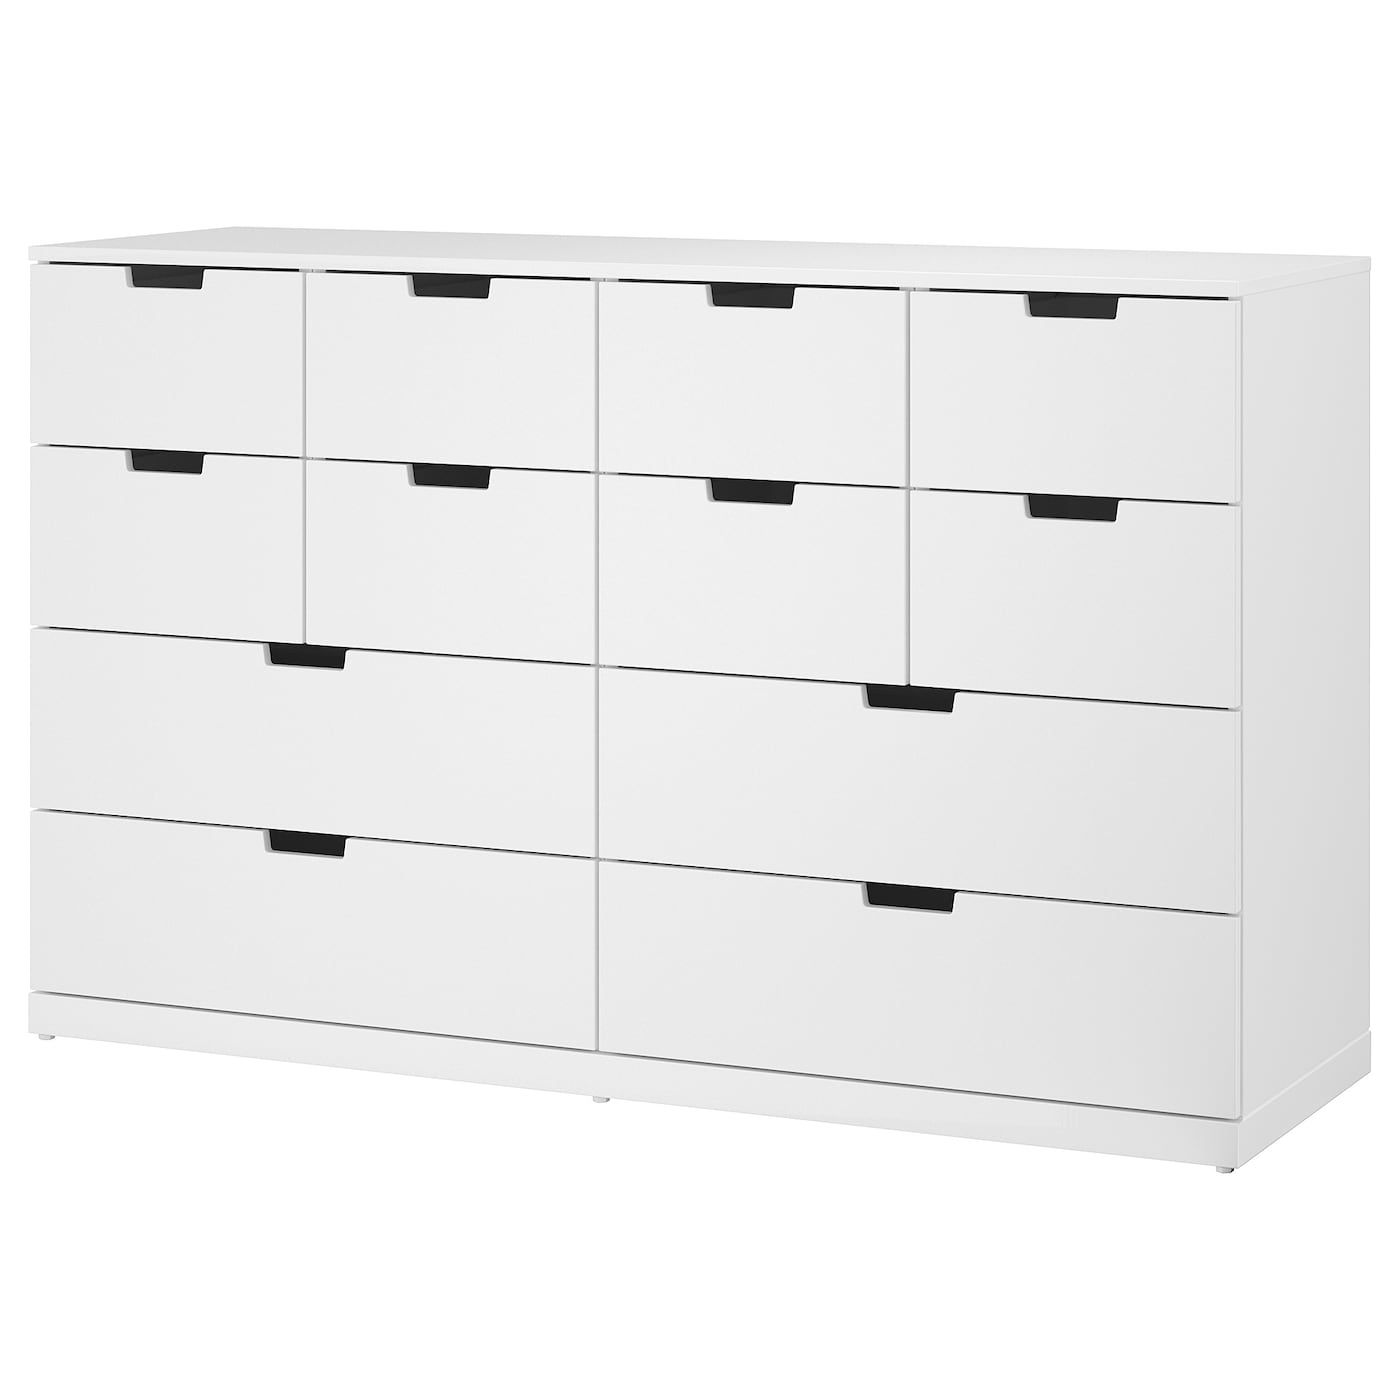 Nordli 12 Drawer Chest White 63x39 Chest Of Drawers Painted